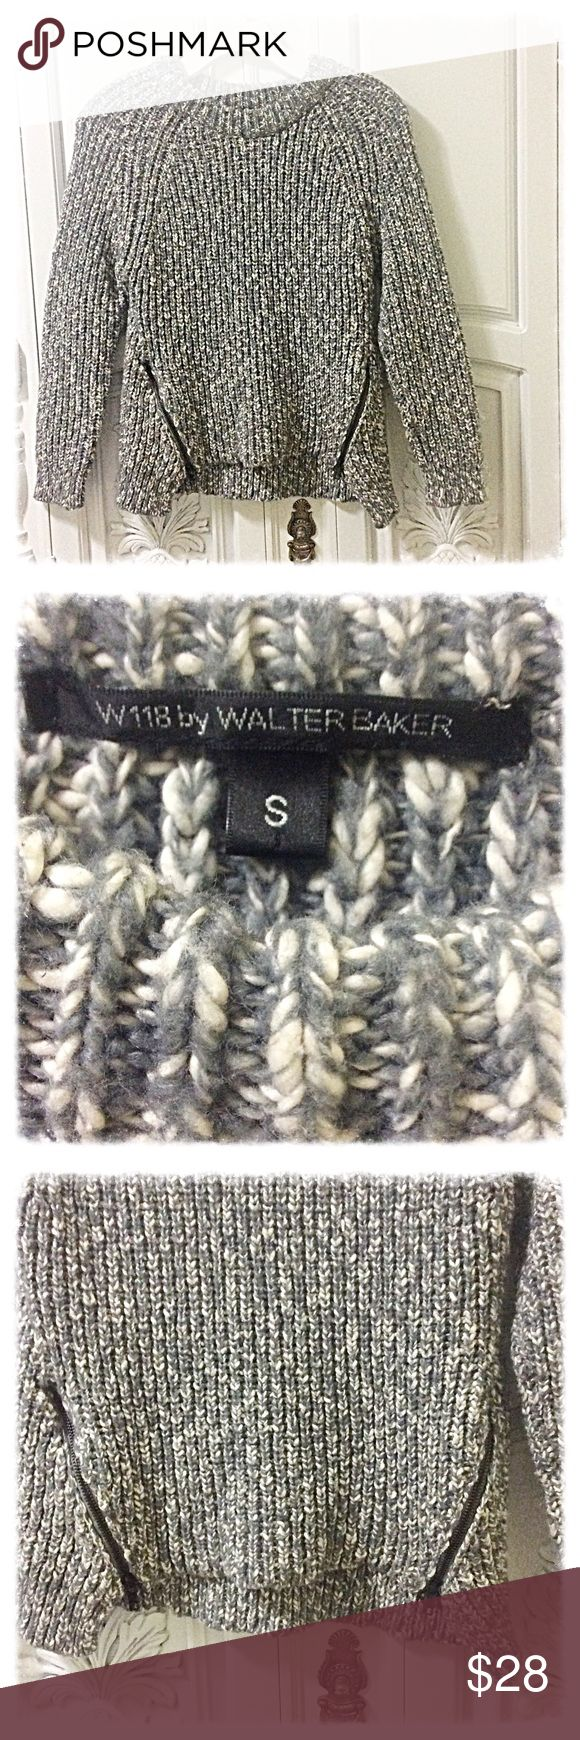 Walter Baker sweater Marbled grey Walter Baker sweater. Two zippers on hem of sweater. Approx 23 inches long from shoulder to hem. W118 by Walter Baker Sweaters